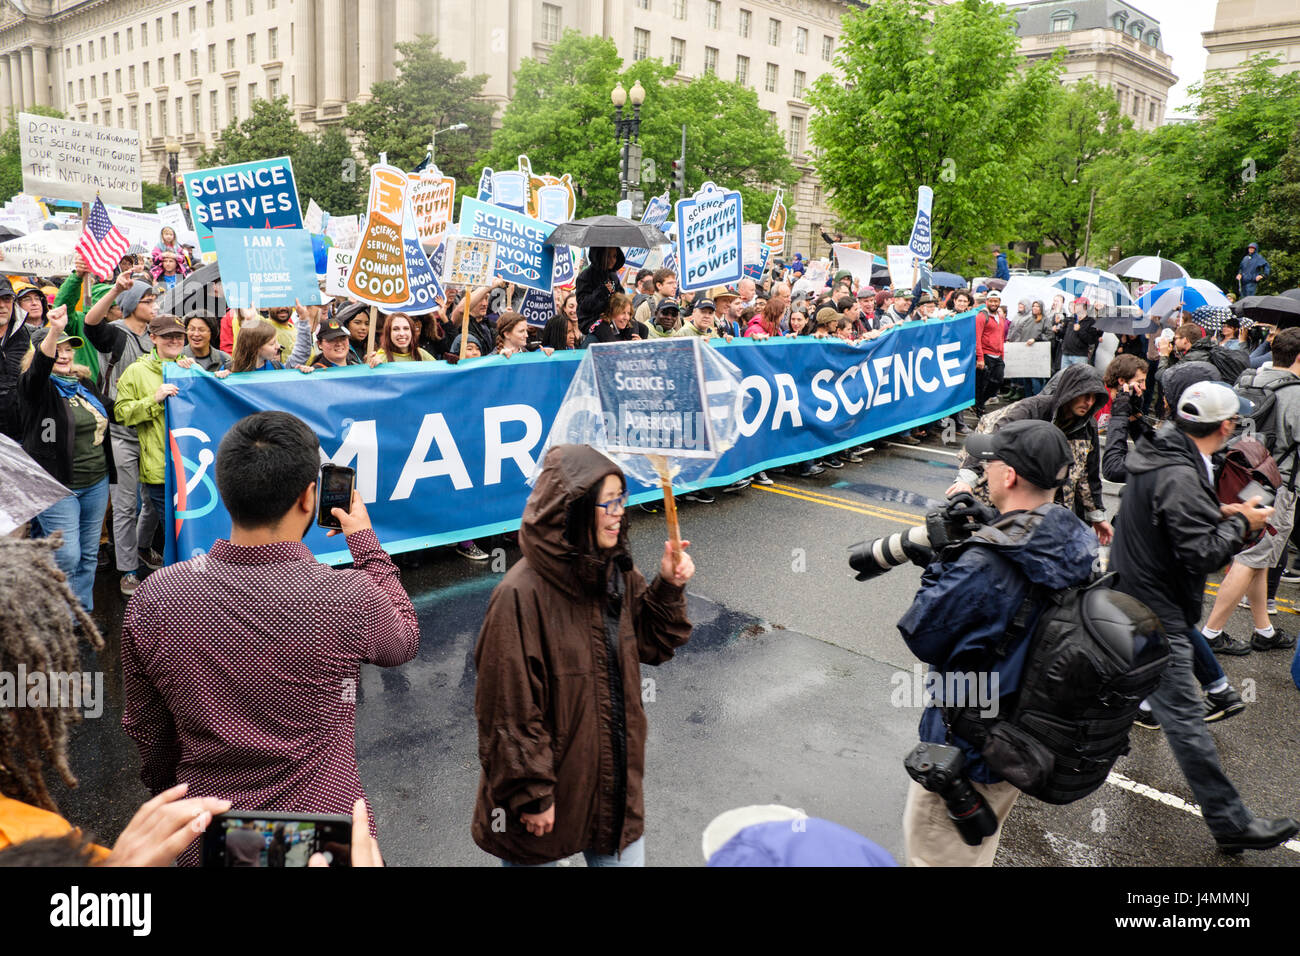 March for Science rally on Earth Day, Washington DC, USA, April 22, 2017. Activists and protesters marching along Stock Photo